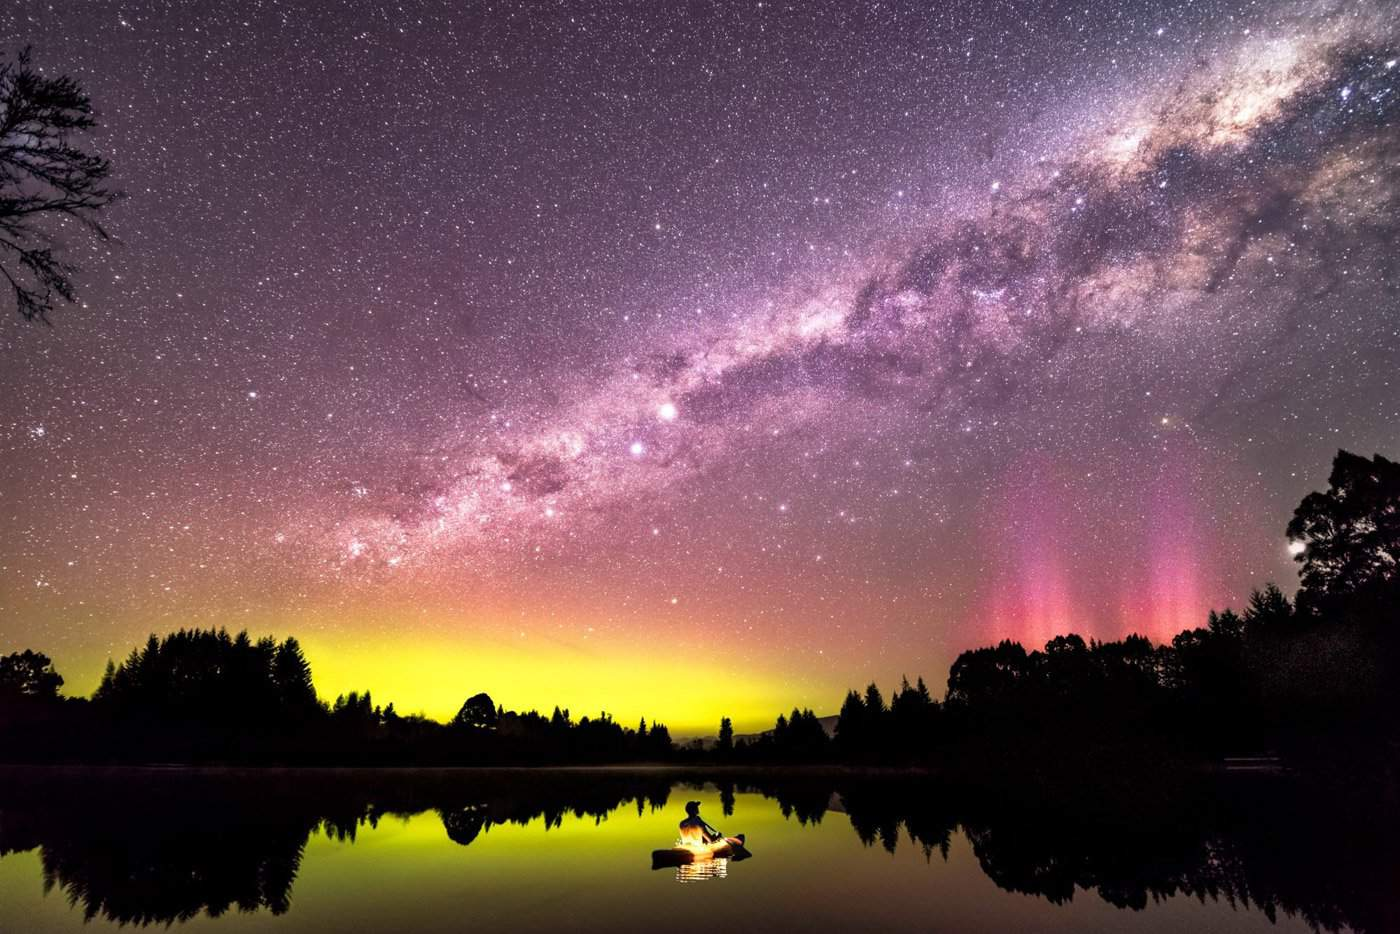 This shot from Lake Henry near Te Anau shows a Milky Way and Aurora Australis coming together on a magnificent night.